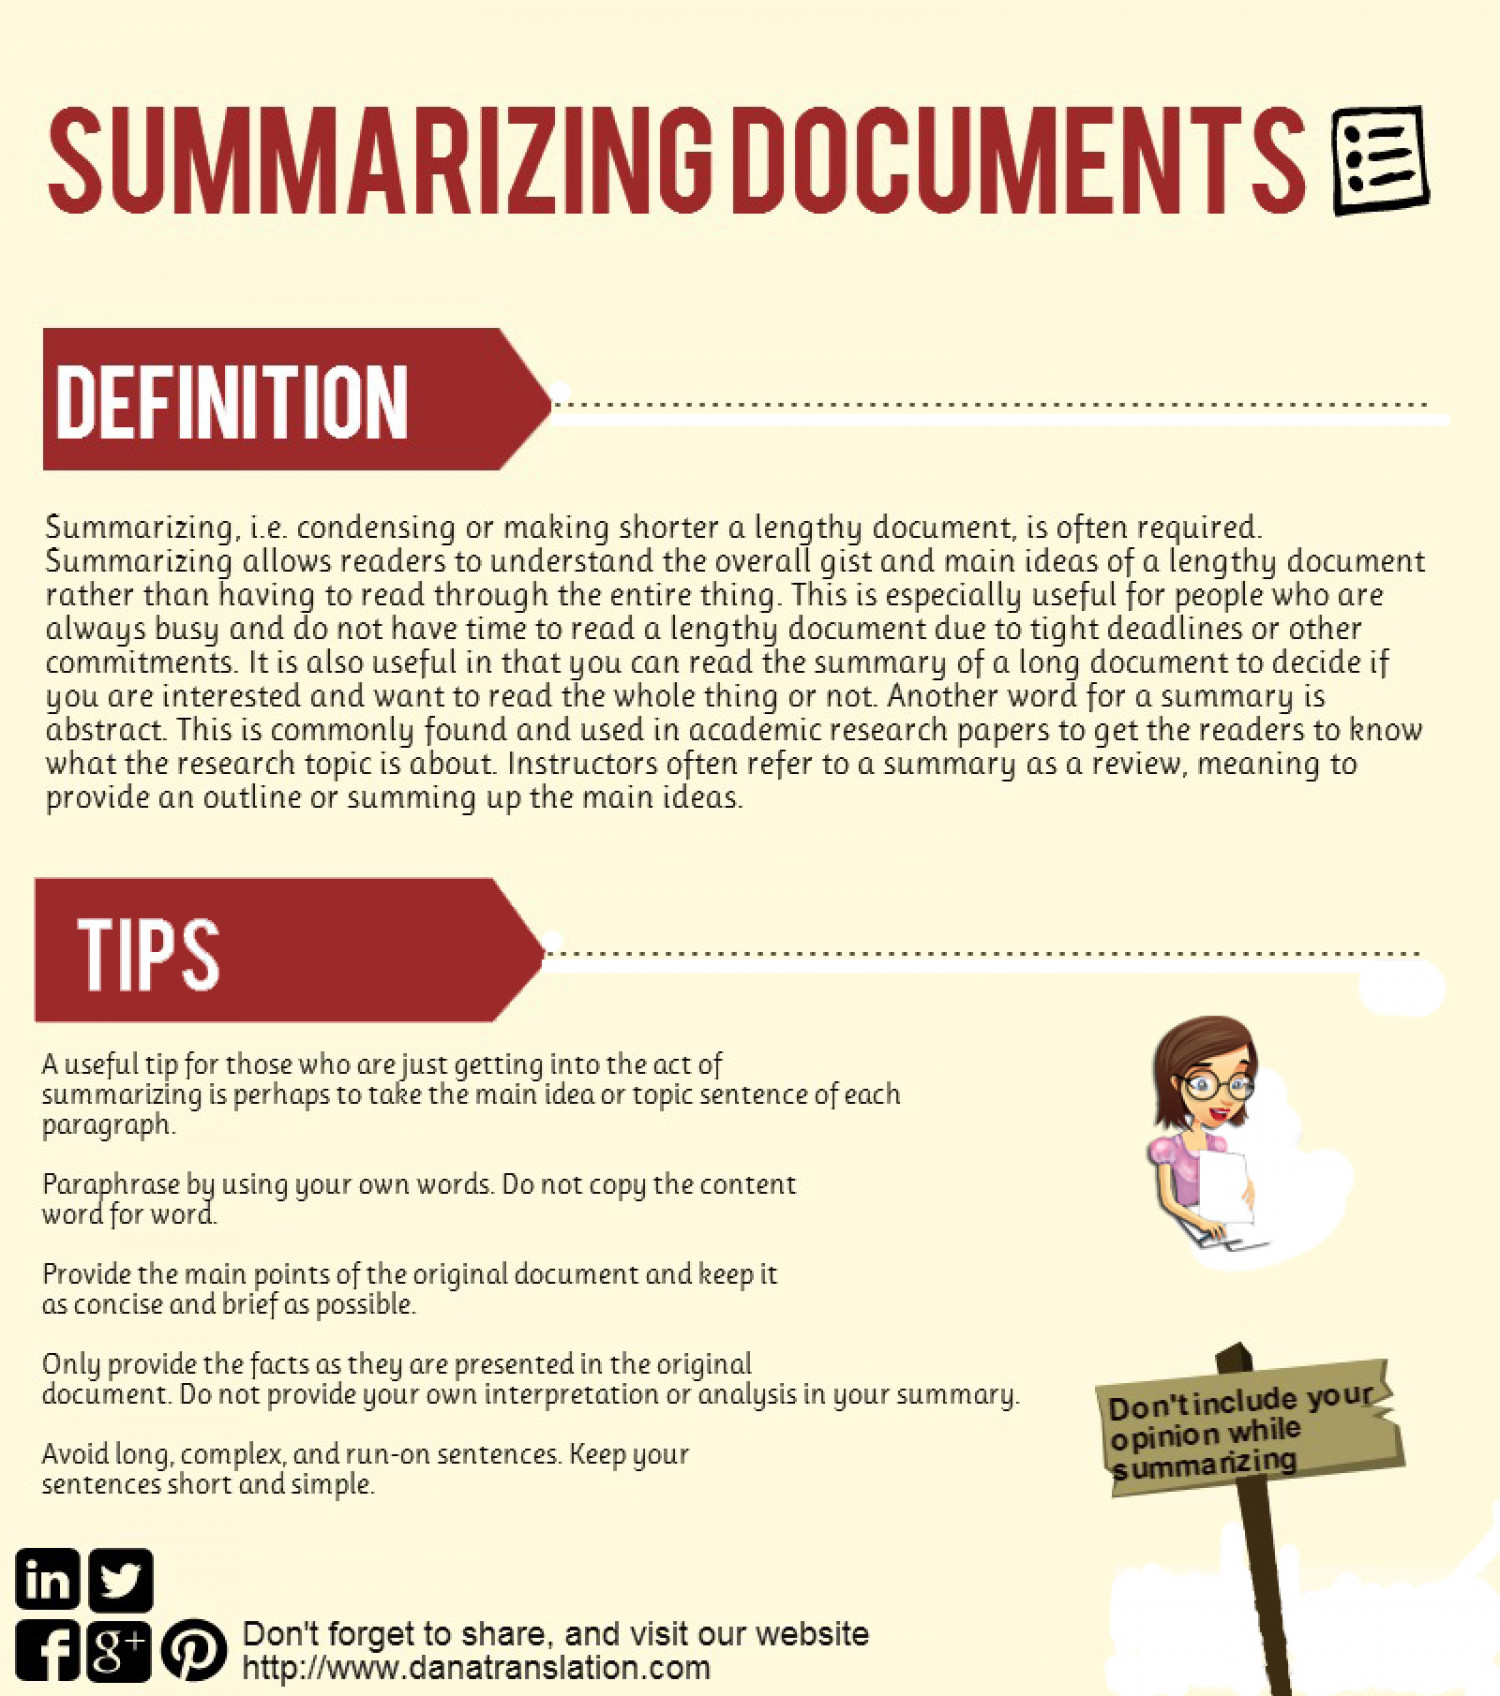 Summarizing Documents [INFOGRAPHIC] Infographic